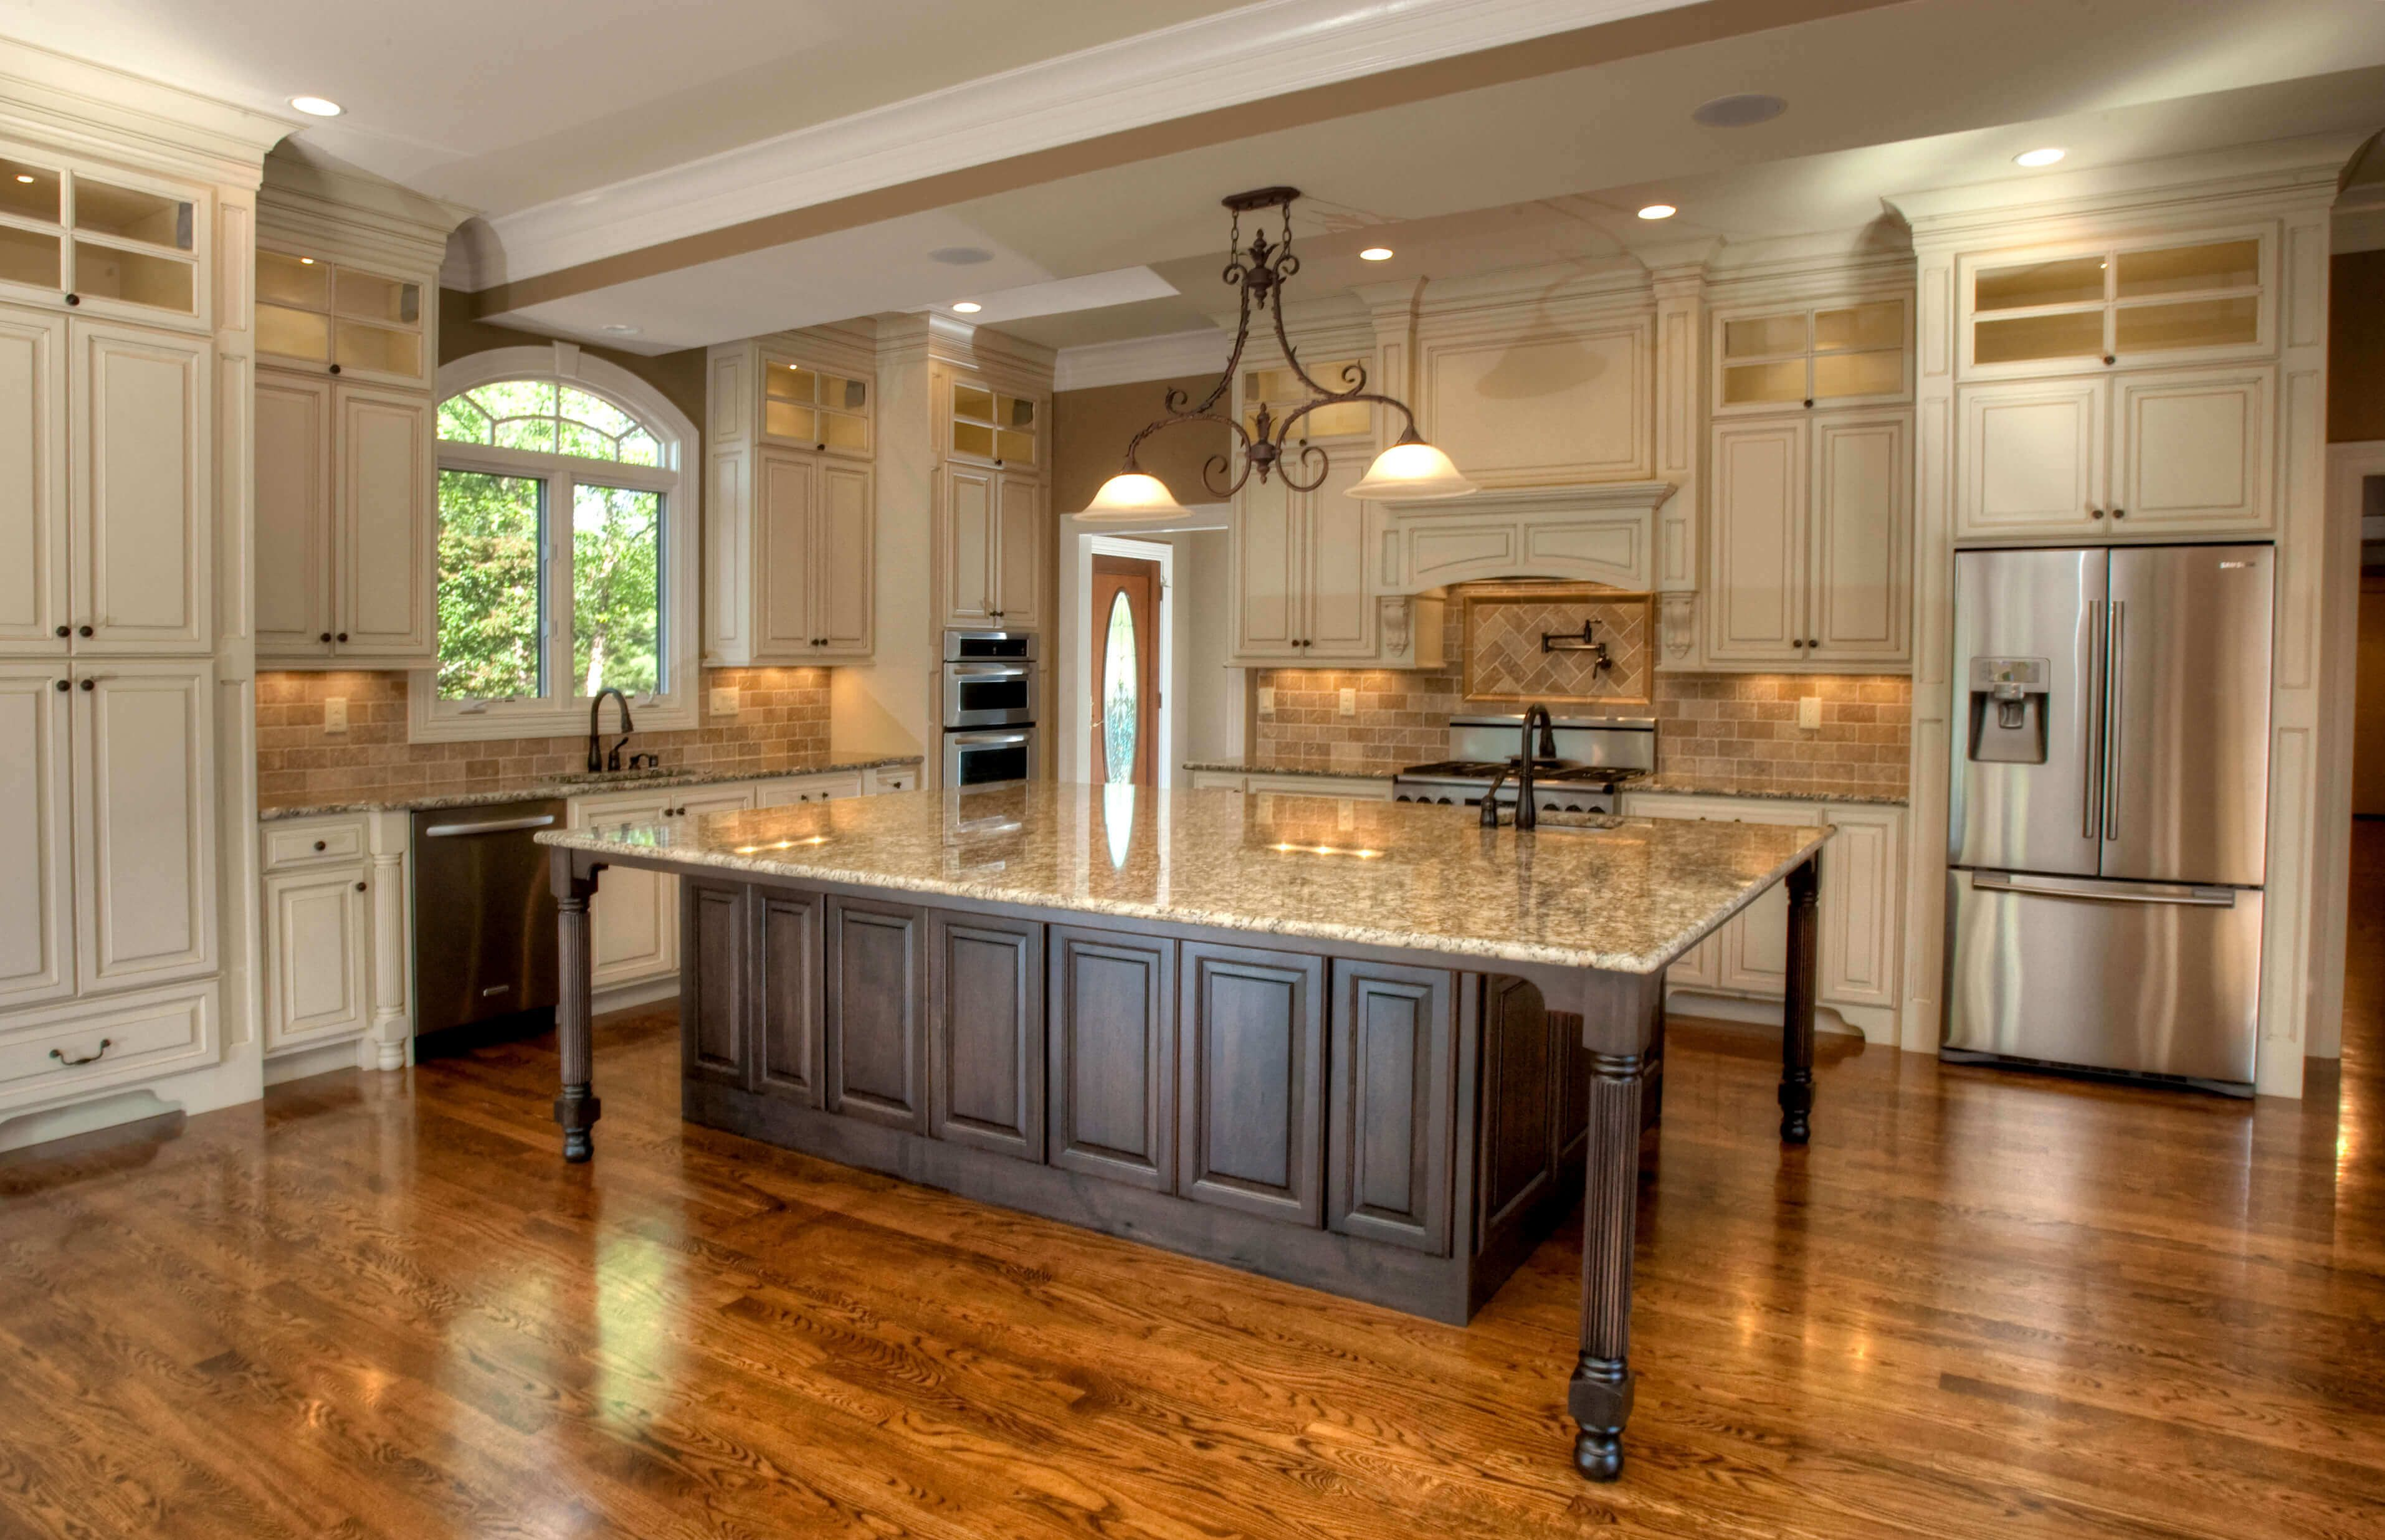 78 Great Looking Modern Kitchen Gallery Sinks Islands Appliances Lights Backsplashes Cabinets Floors And More Granite Kitchen Island Kitchen Island With Seating Kitchen Island Design